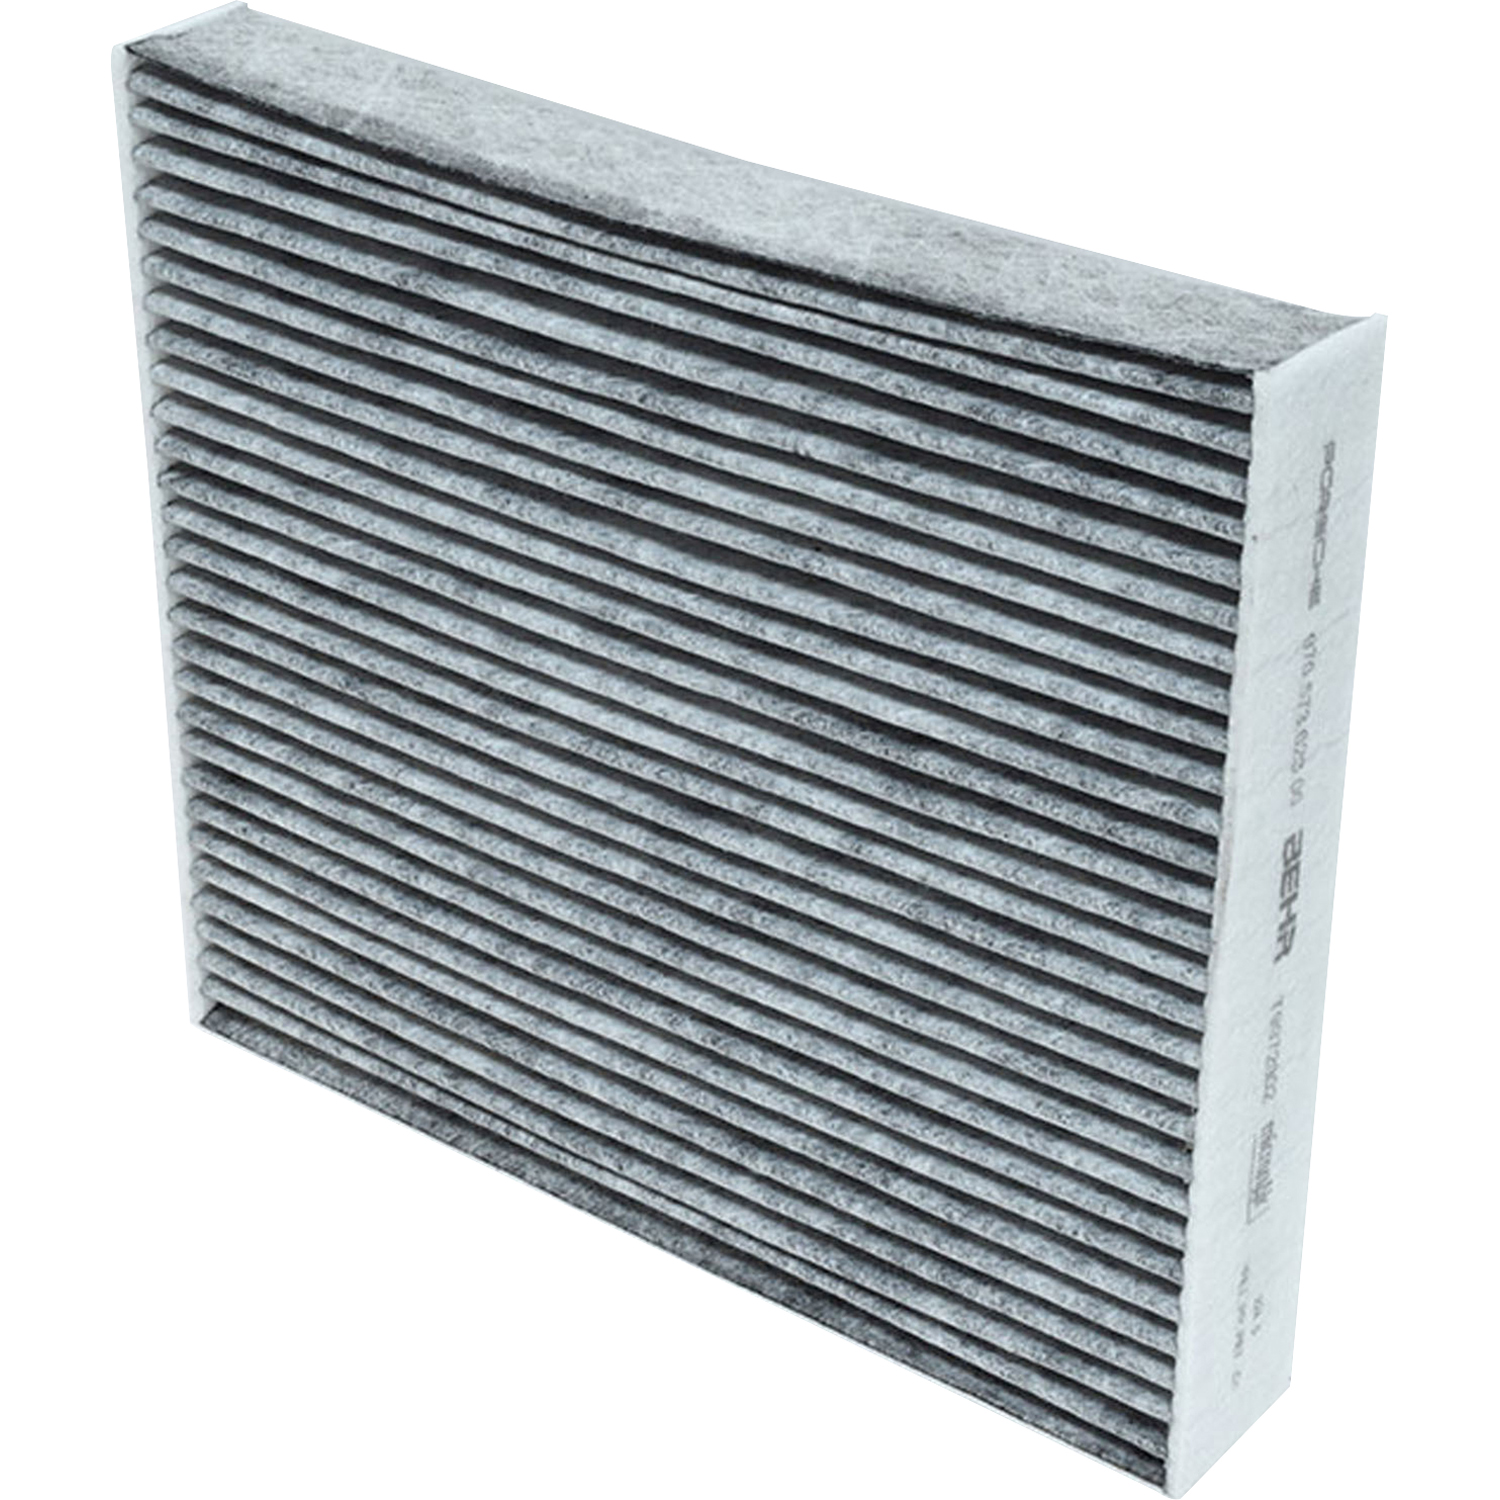 Charcoal Cabin Air Filter FI 1268C